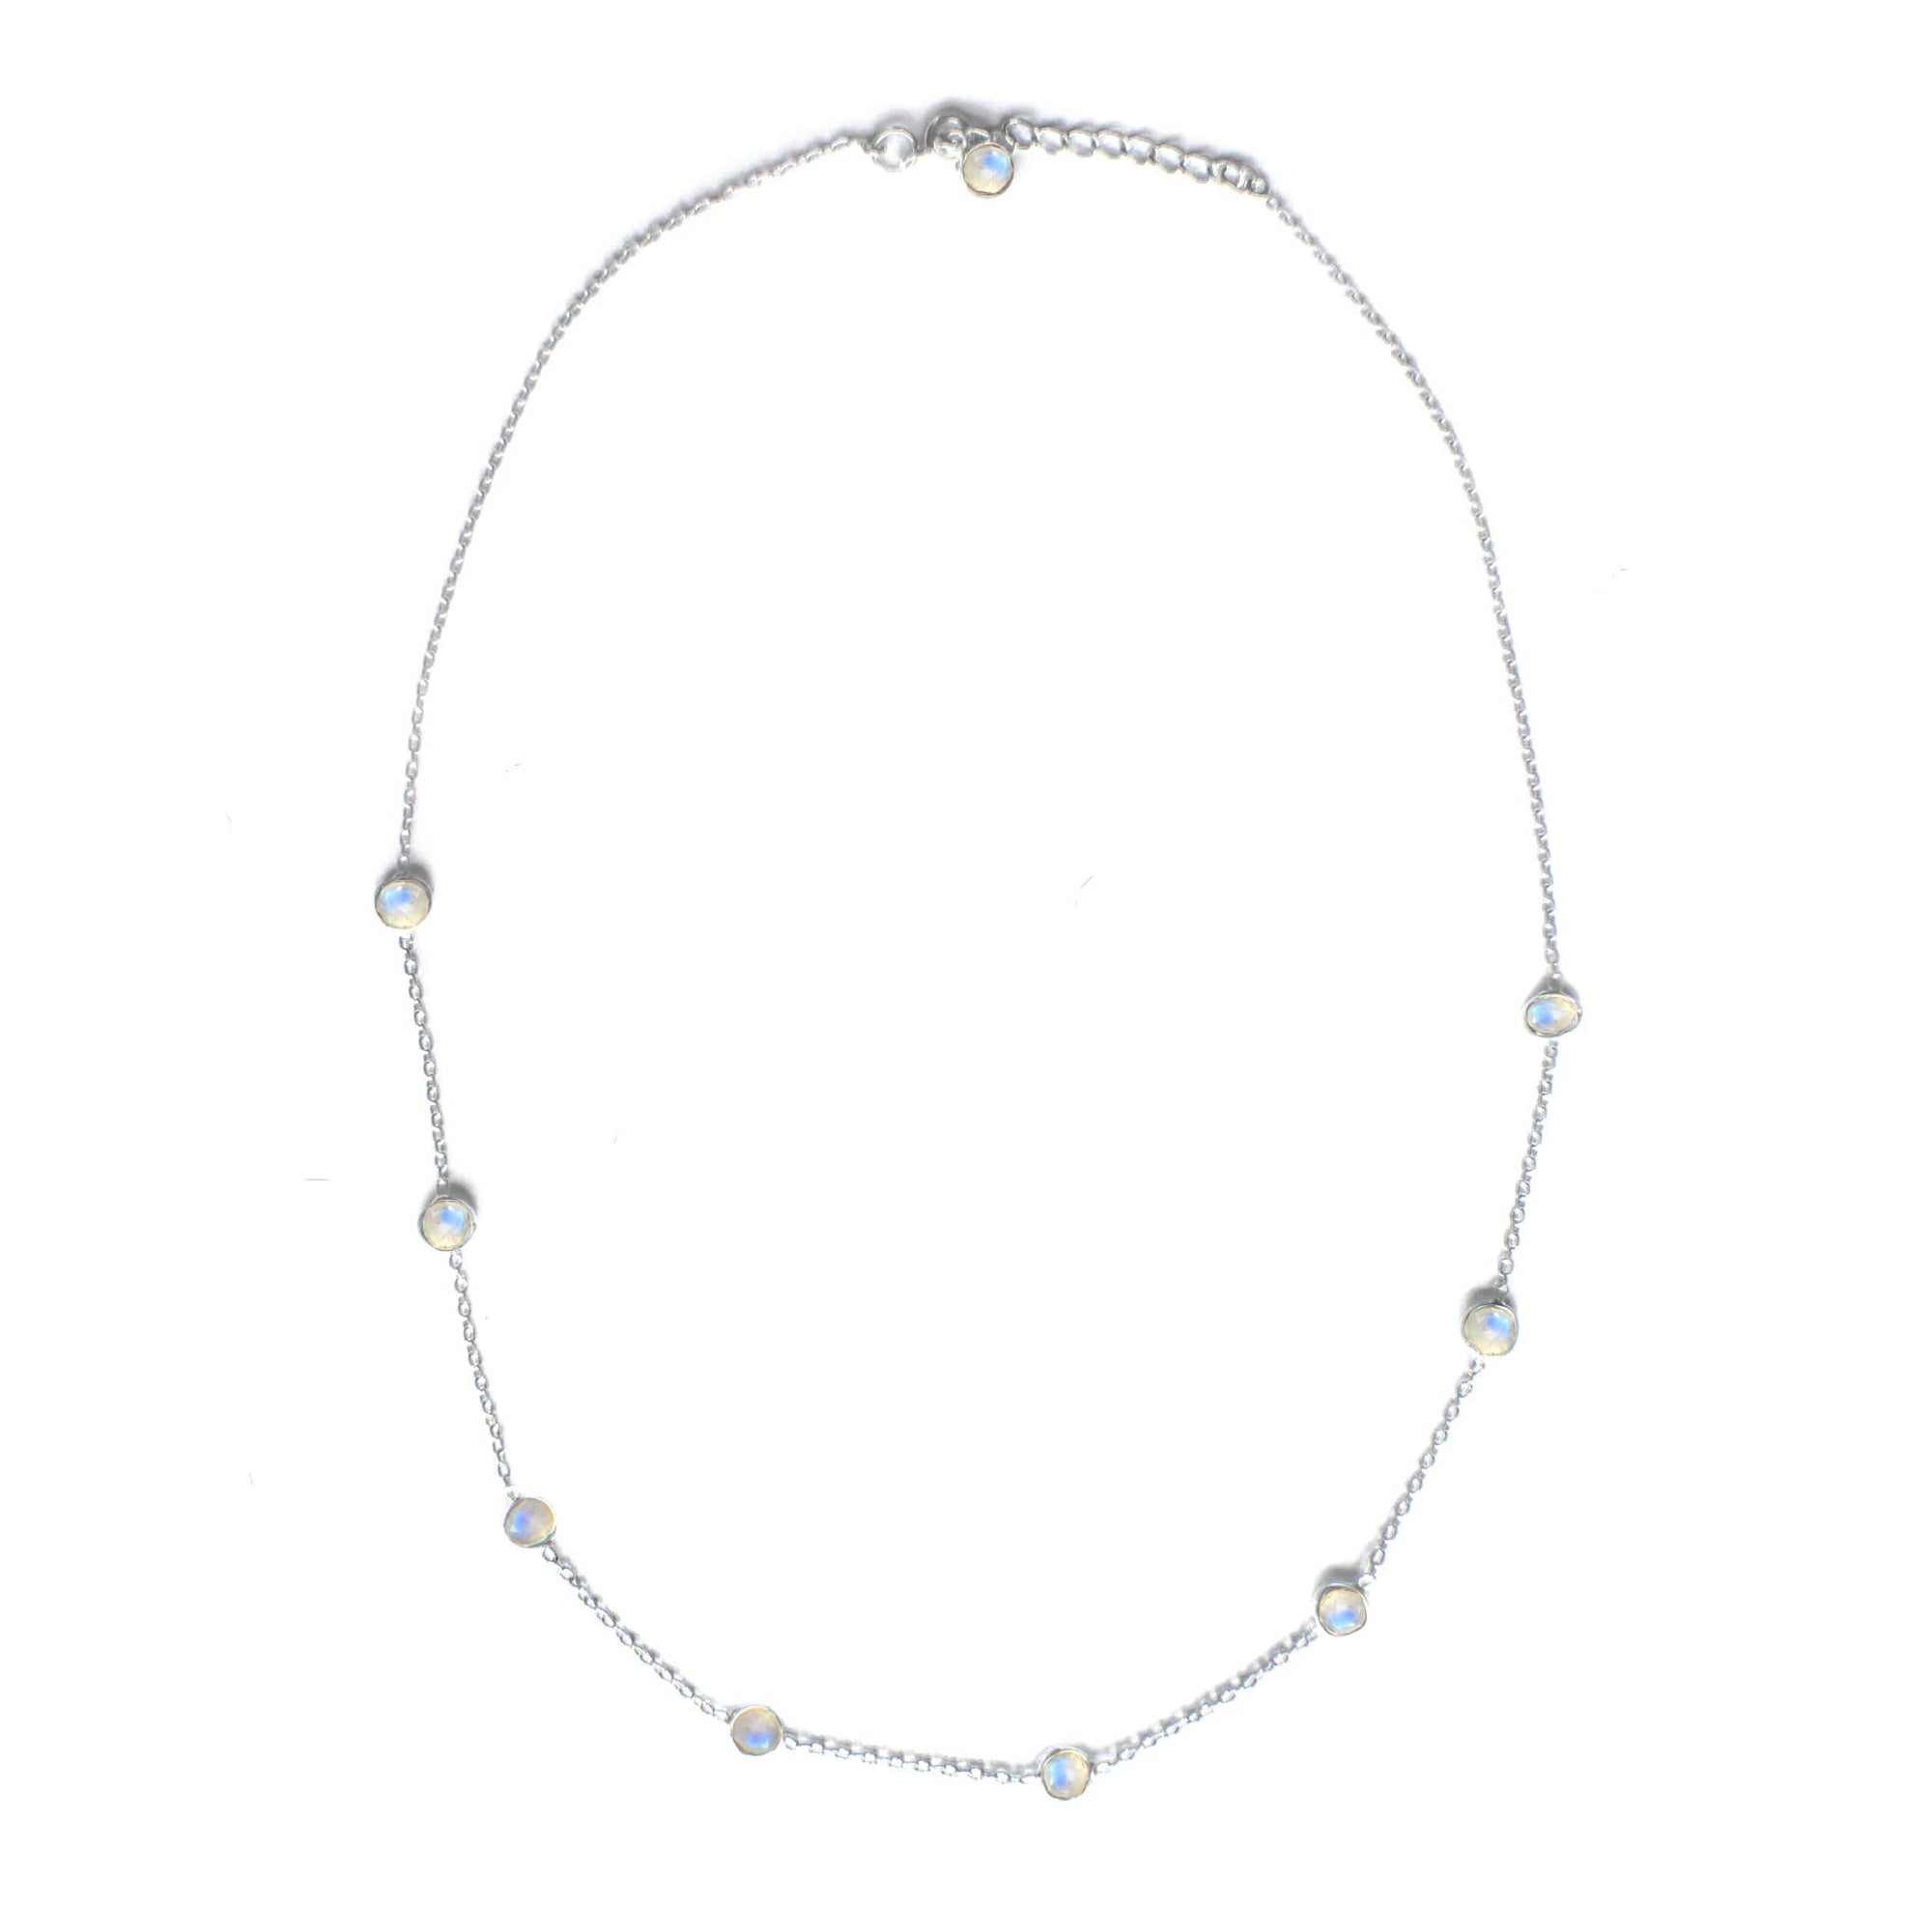 925 Silver Luxe Series Necklace - Dainty 9 Stones (Moonstone)